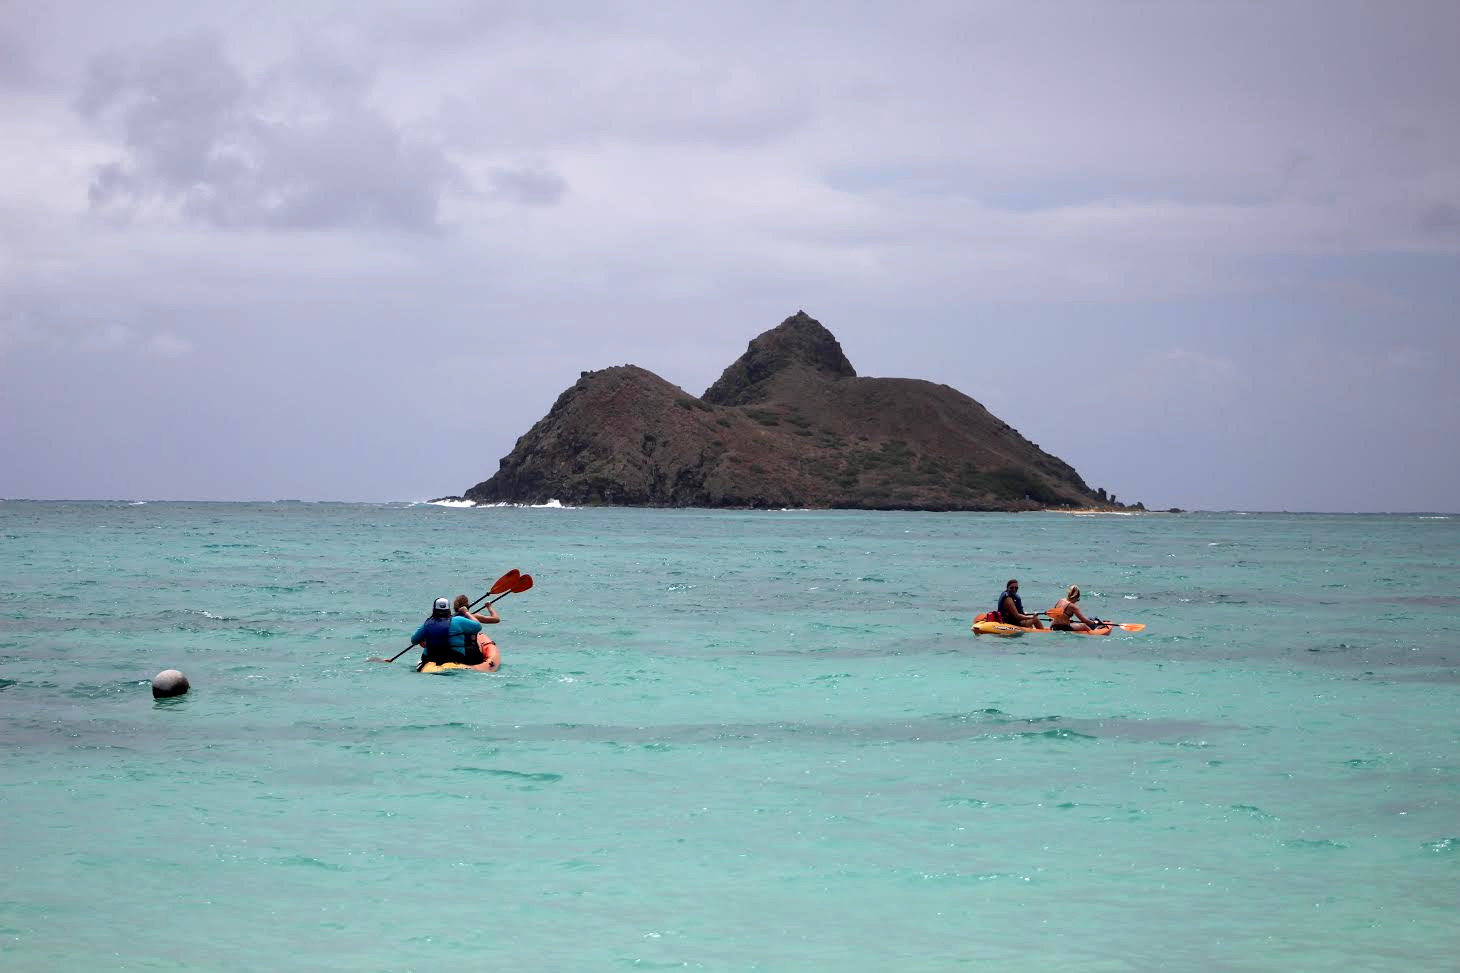 Complete travel guide to Kailua, Hawaii